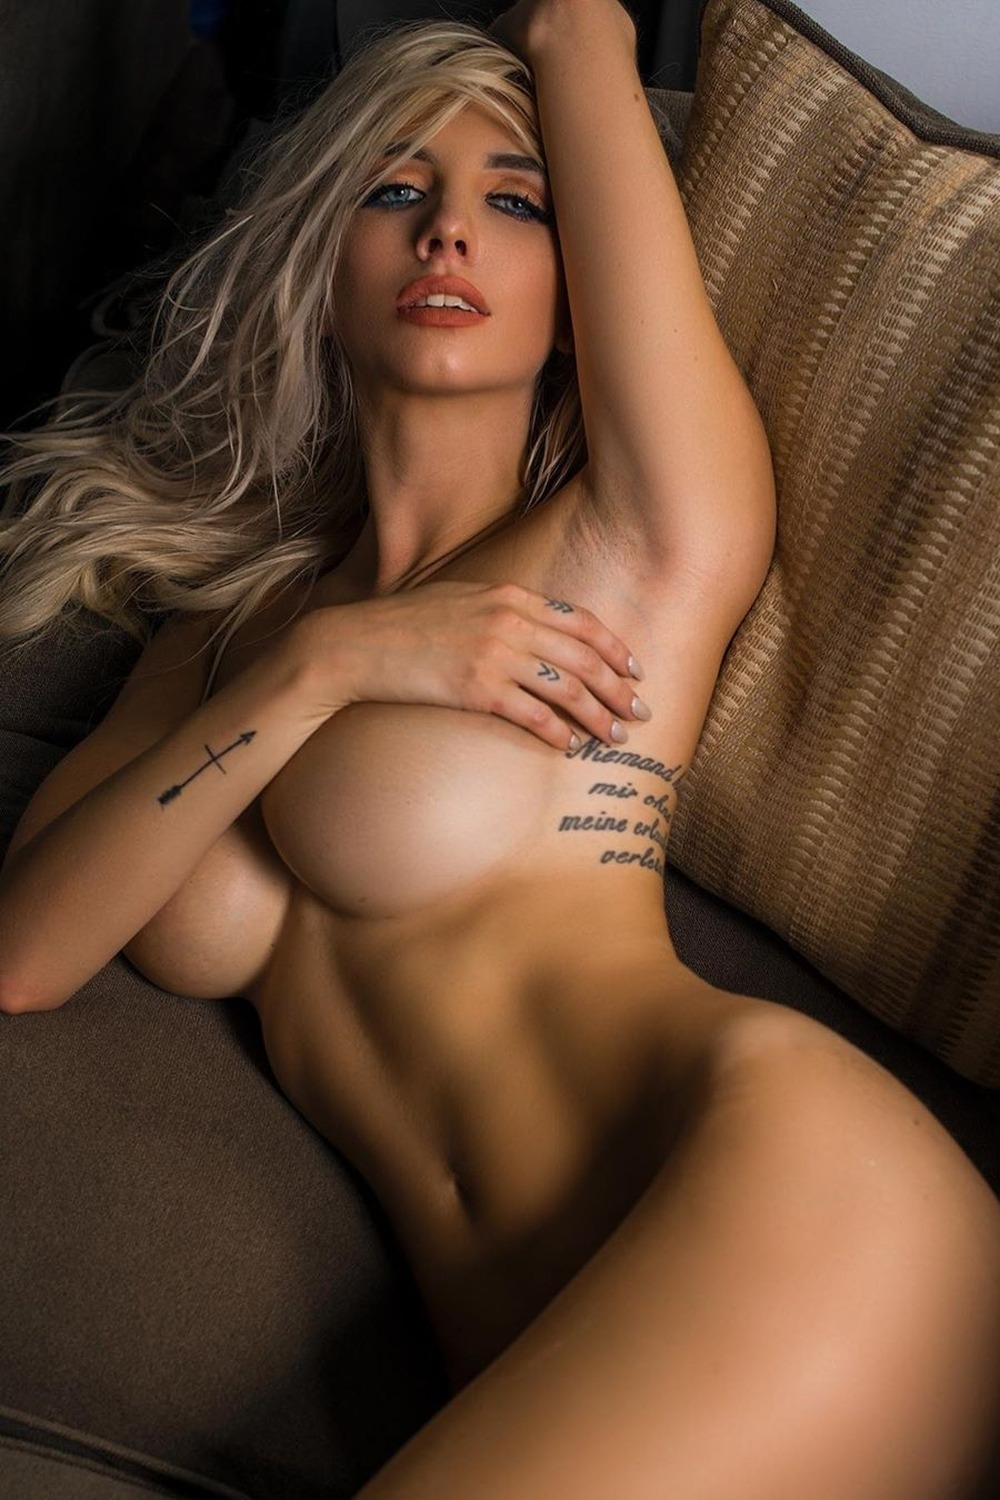 #Samantha Allyson #Samantha Allyson#perfect body#beautiful models#beautiful sexy#stunning beautiful